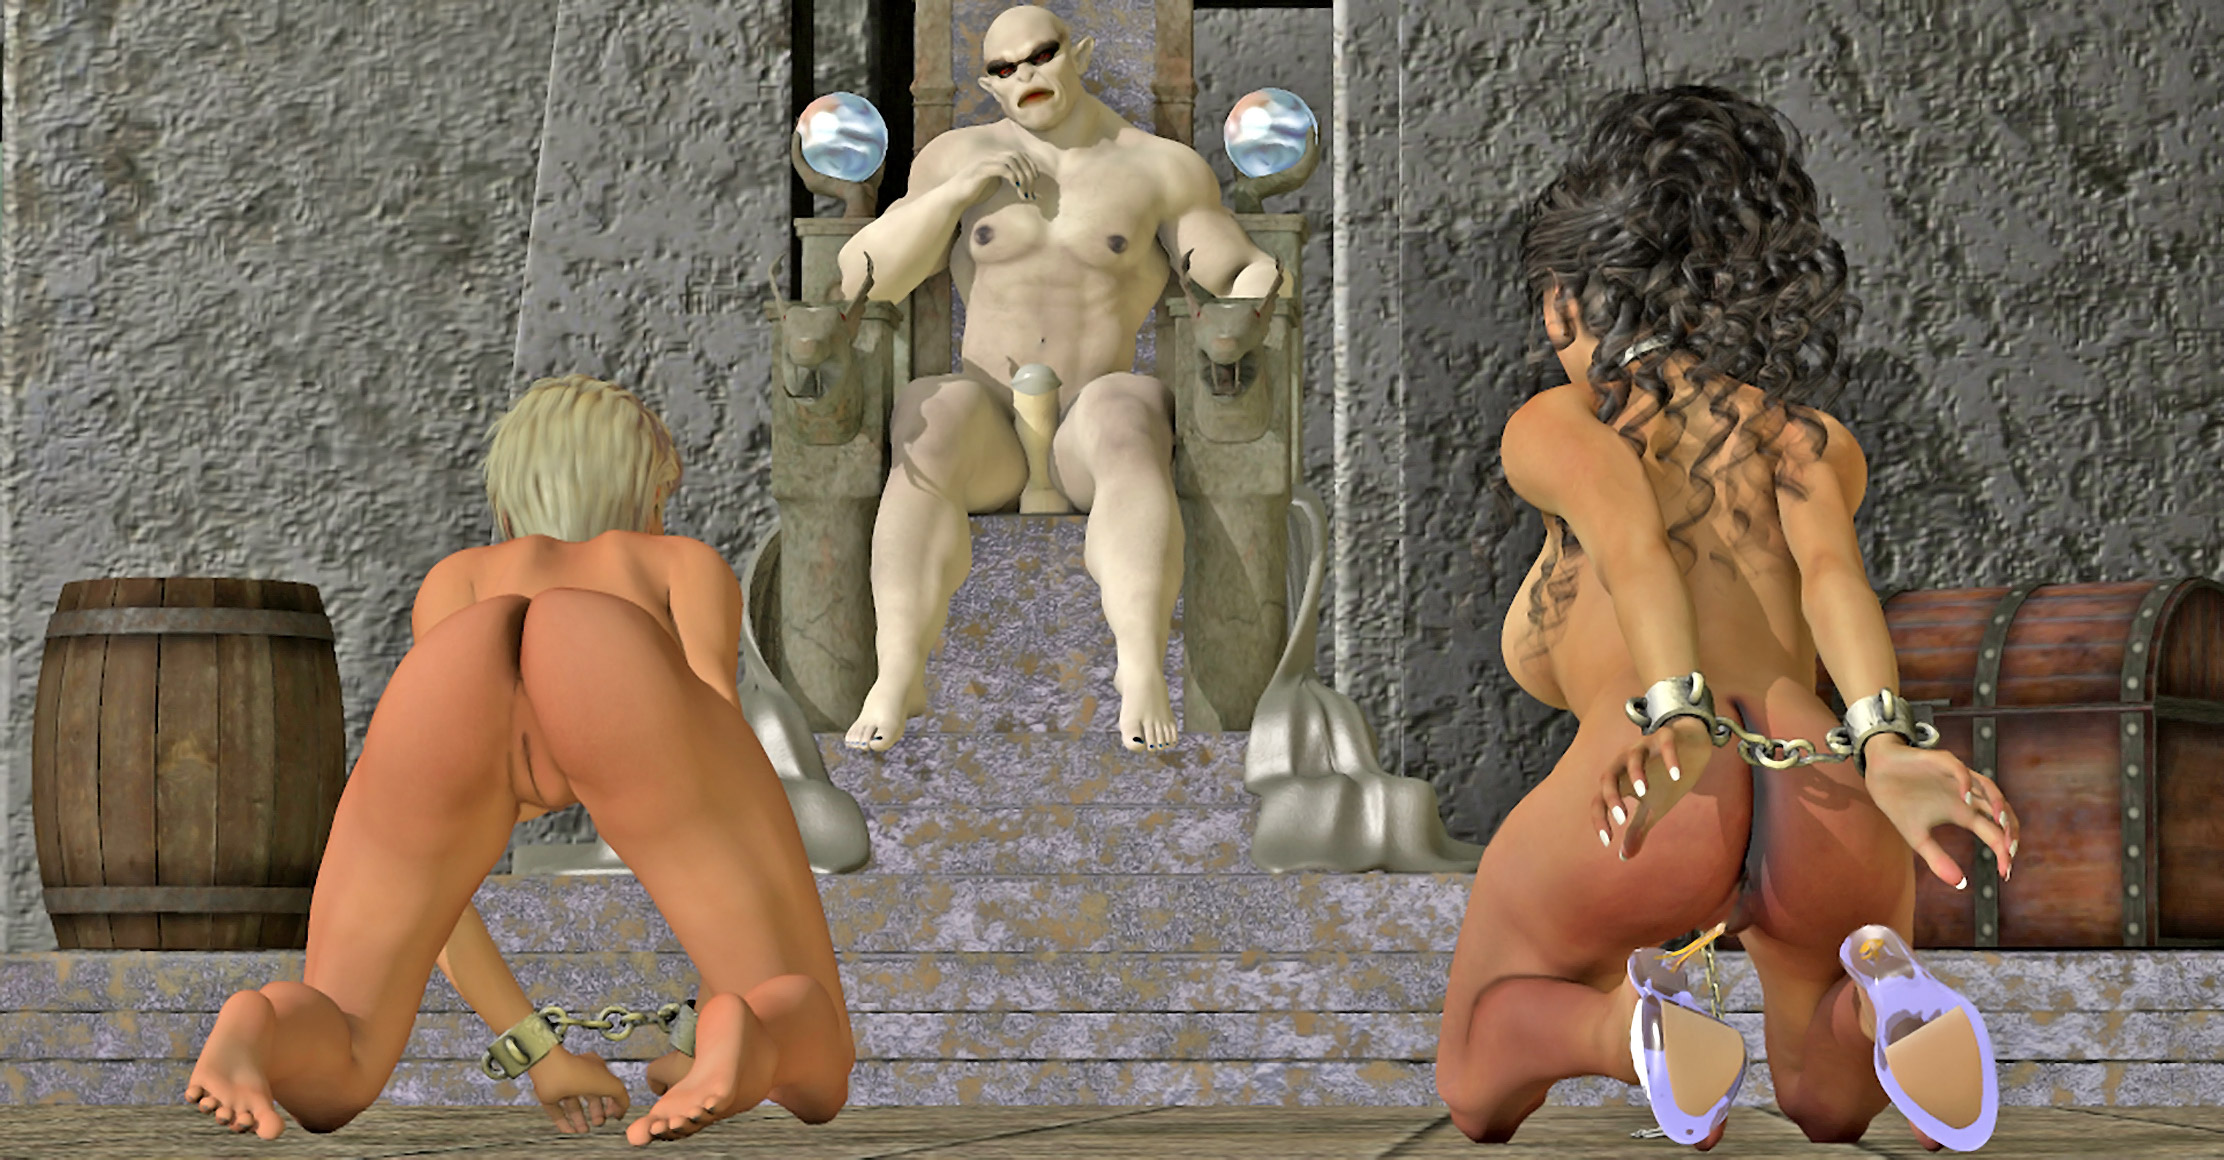 Hot 3d porn monster fantasy xxx download